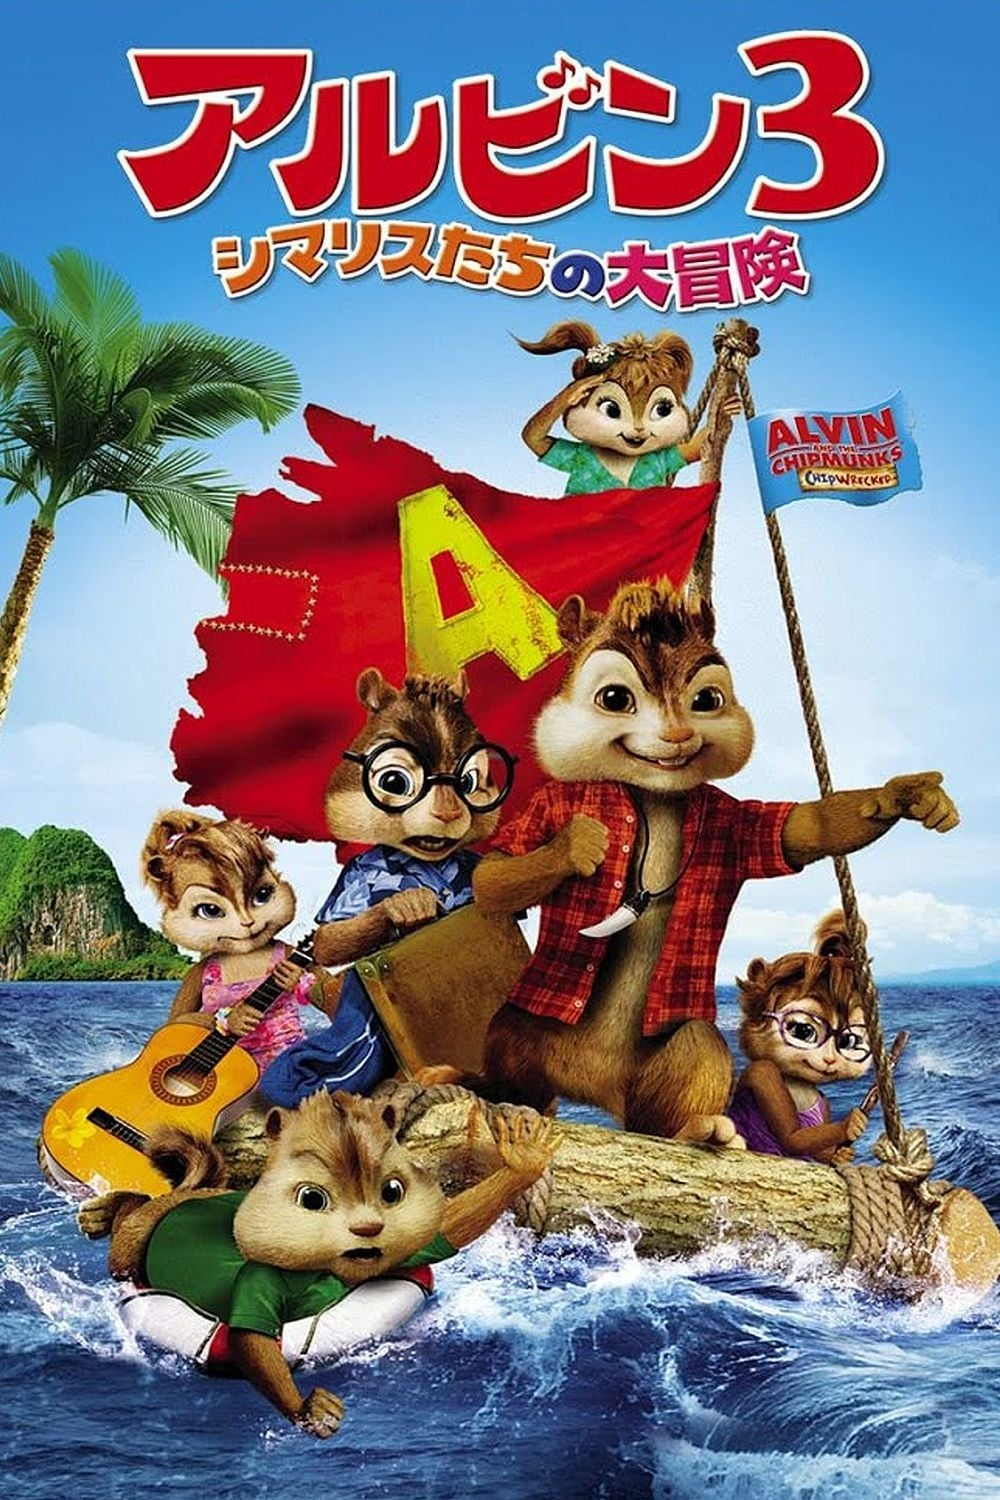 Alvin And The Chipmunks 3 Images download alvin and the chipmunks chipwrecked full movie free